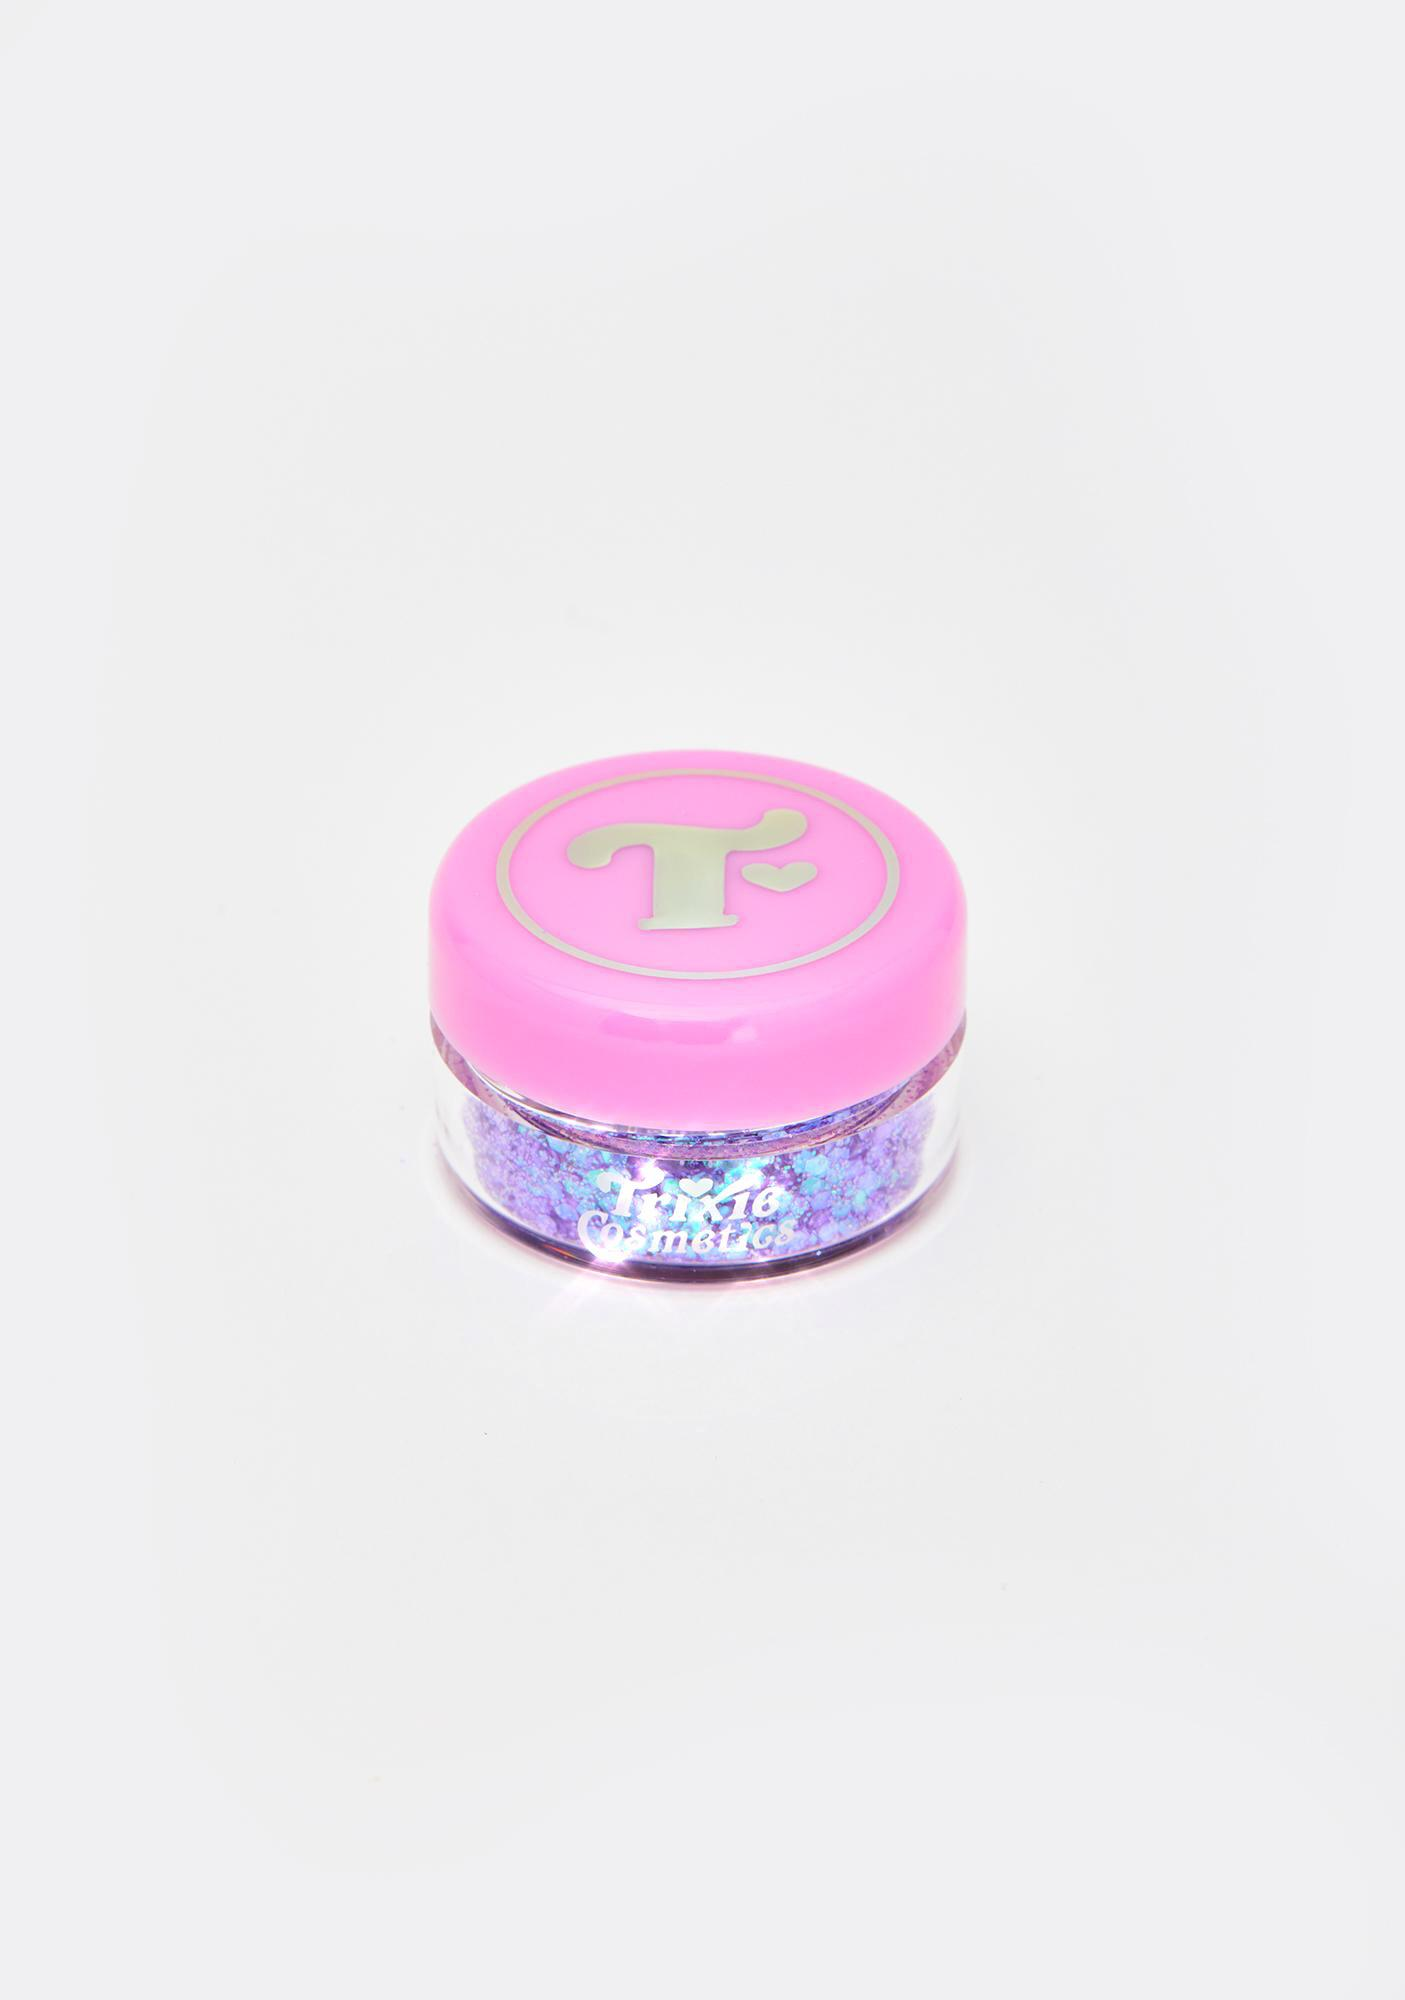 Trixie Cosmetics Lava Lamp Sprinkles Loose Glitter